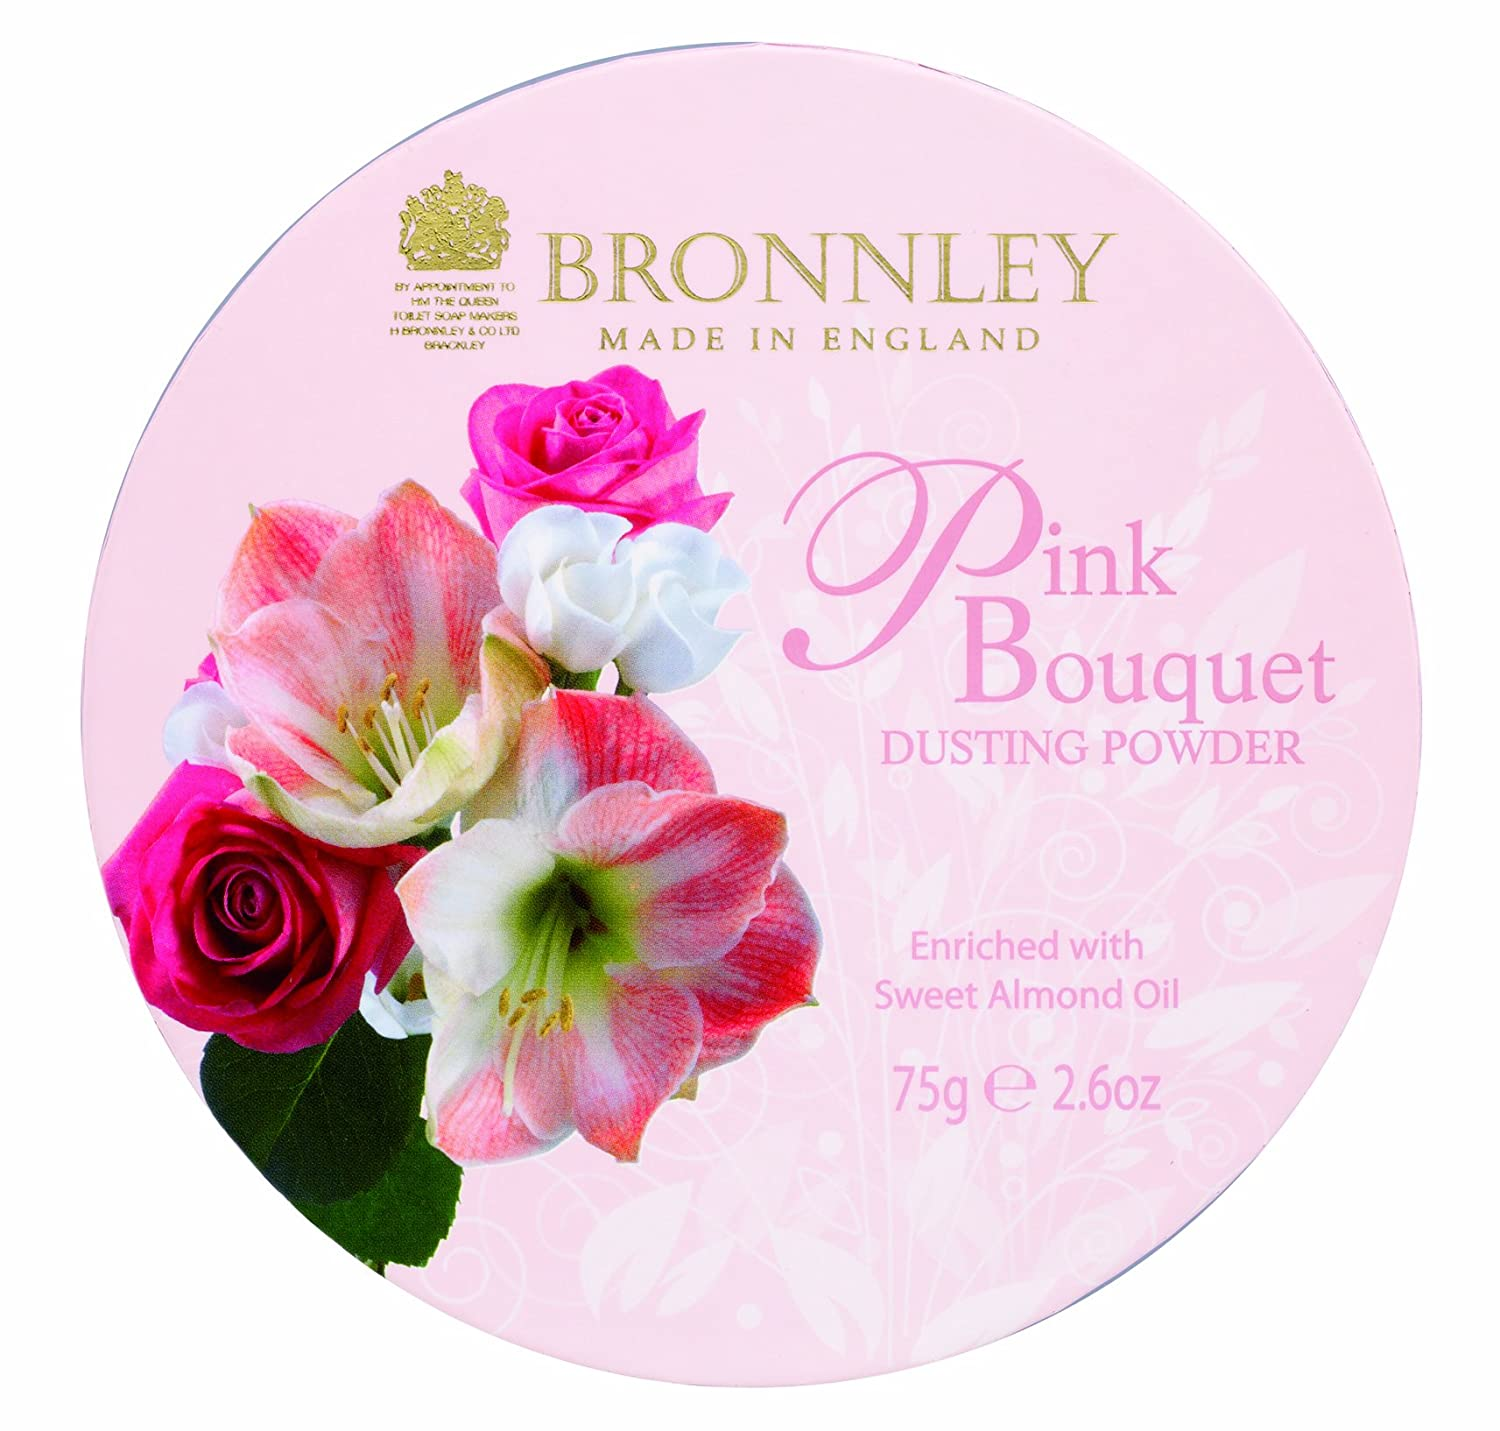 Polvos sueltos Bronnley con rosa rosa Ramo 75g H. Bronnley & Co. UK Ltd 112037